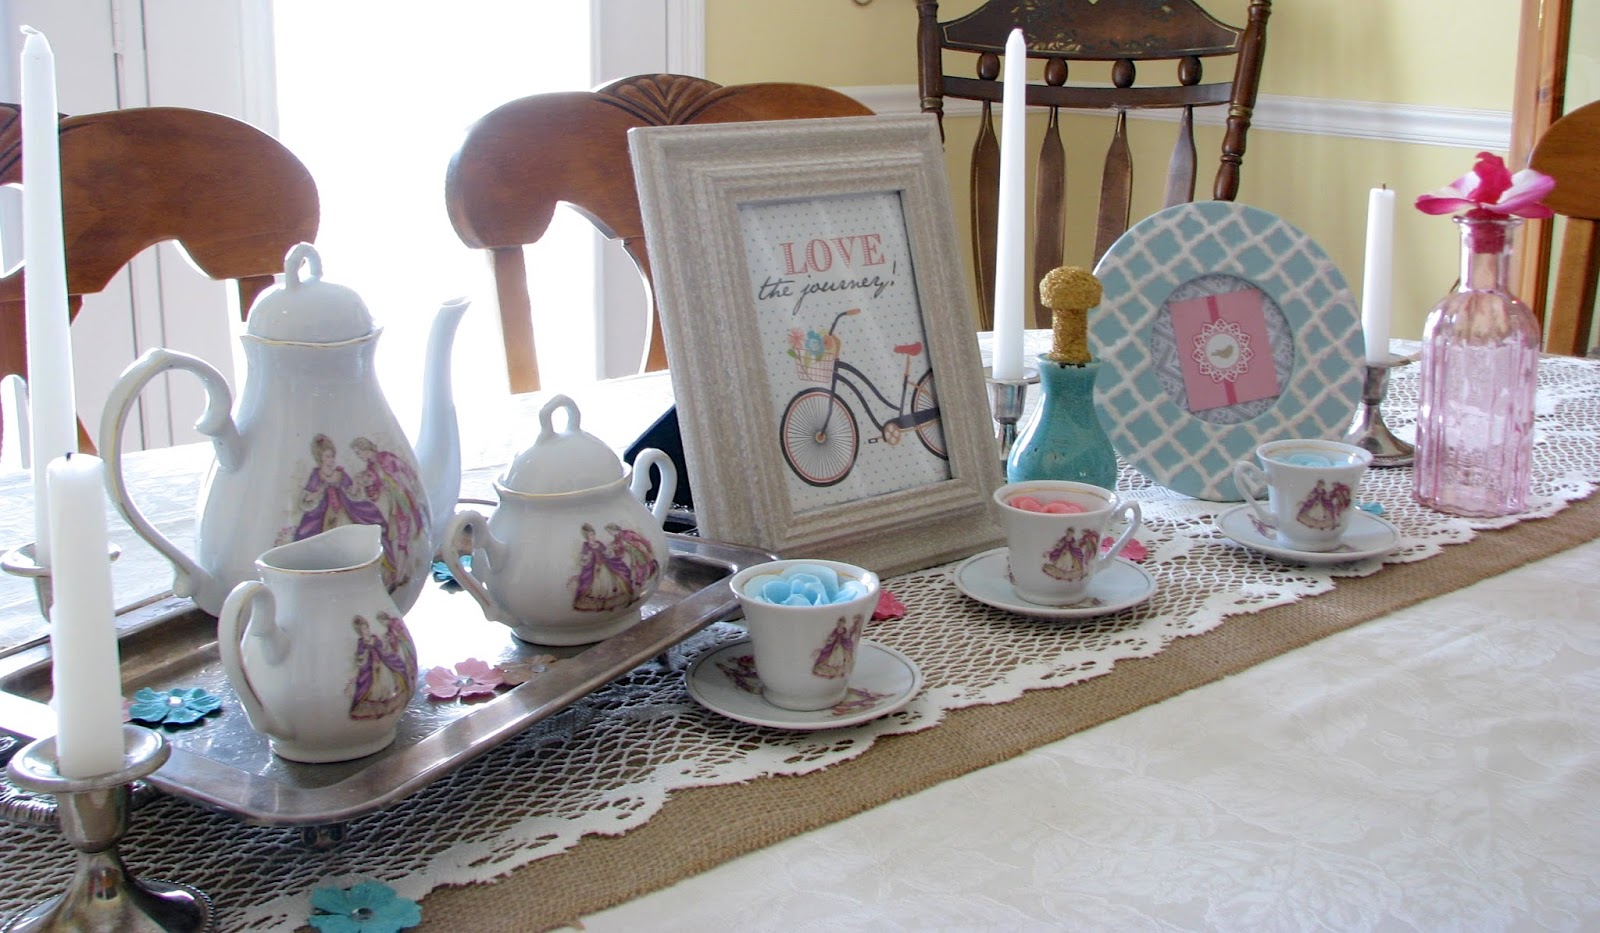 Vintage tea set on a silver tray with other vintage accessories